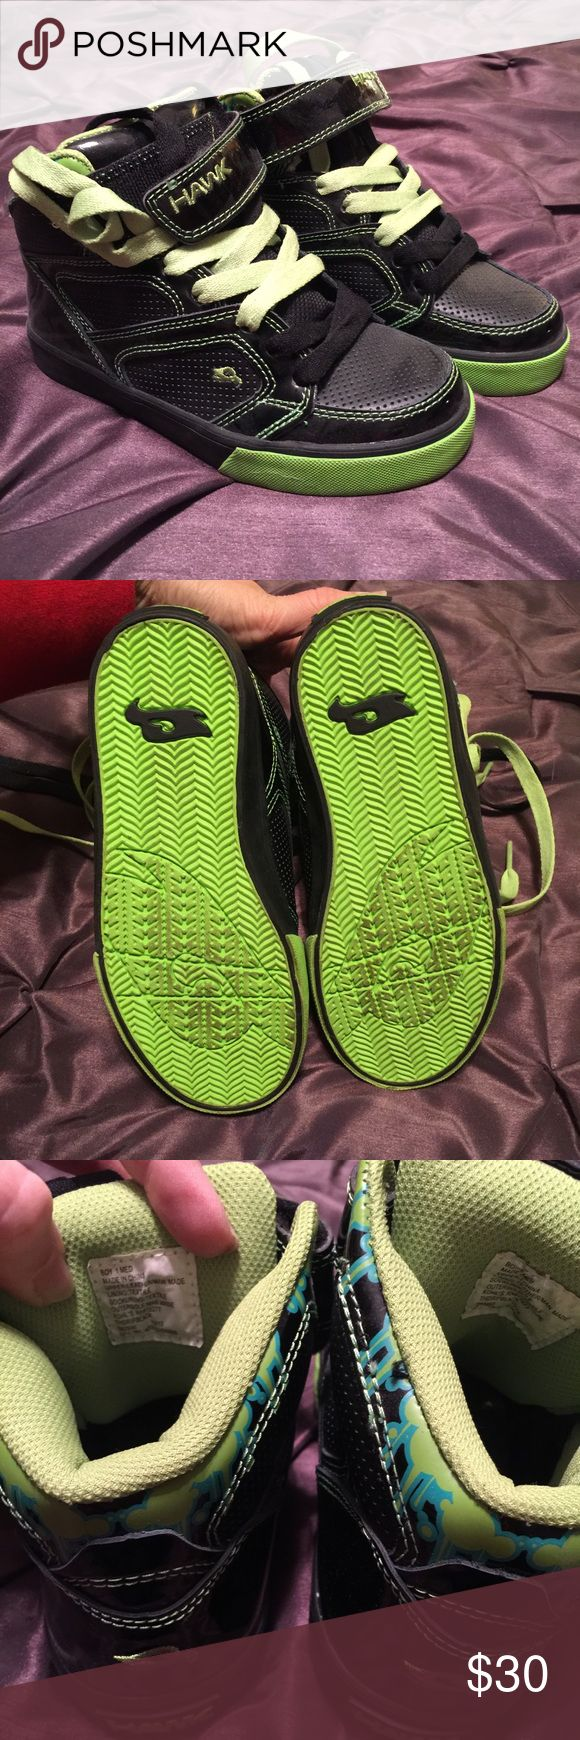 NWOT Tony Hawk Sneakers!!! Hi Top Tony Hawk sneakers w/lime green and black laces. Soon wore these one time for maybe an hour. Very cute, he just didn't like them on. True to size but may run just a little bigger. Get him ready to go ride that skateboard Tony Hawk Shoes Sneakers